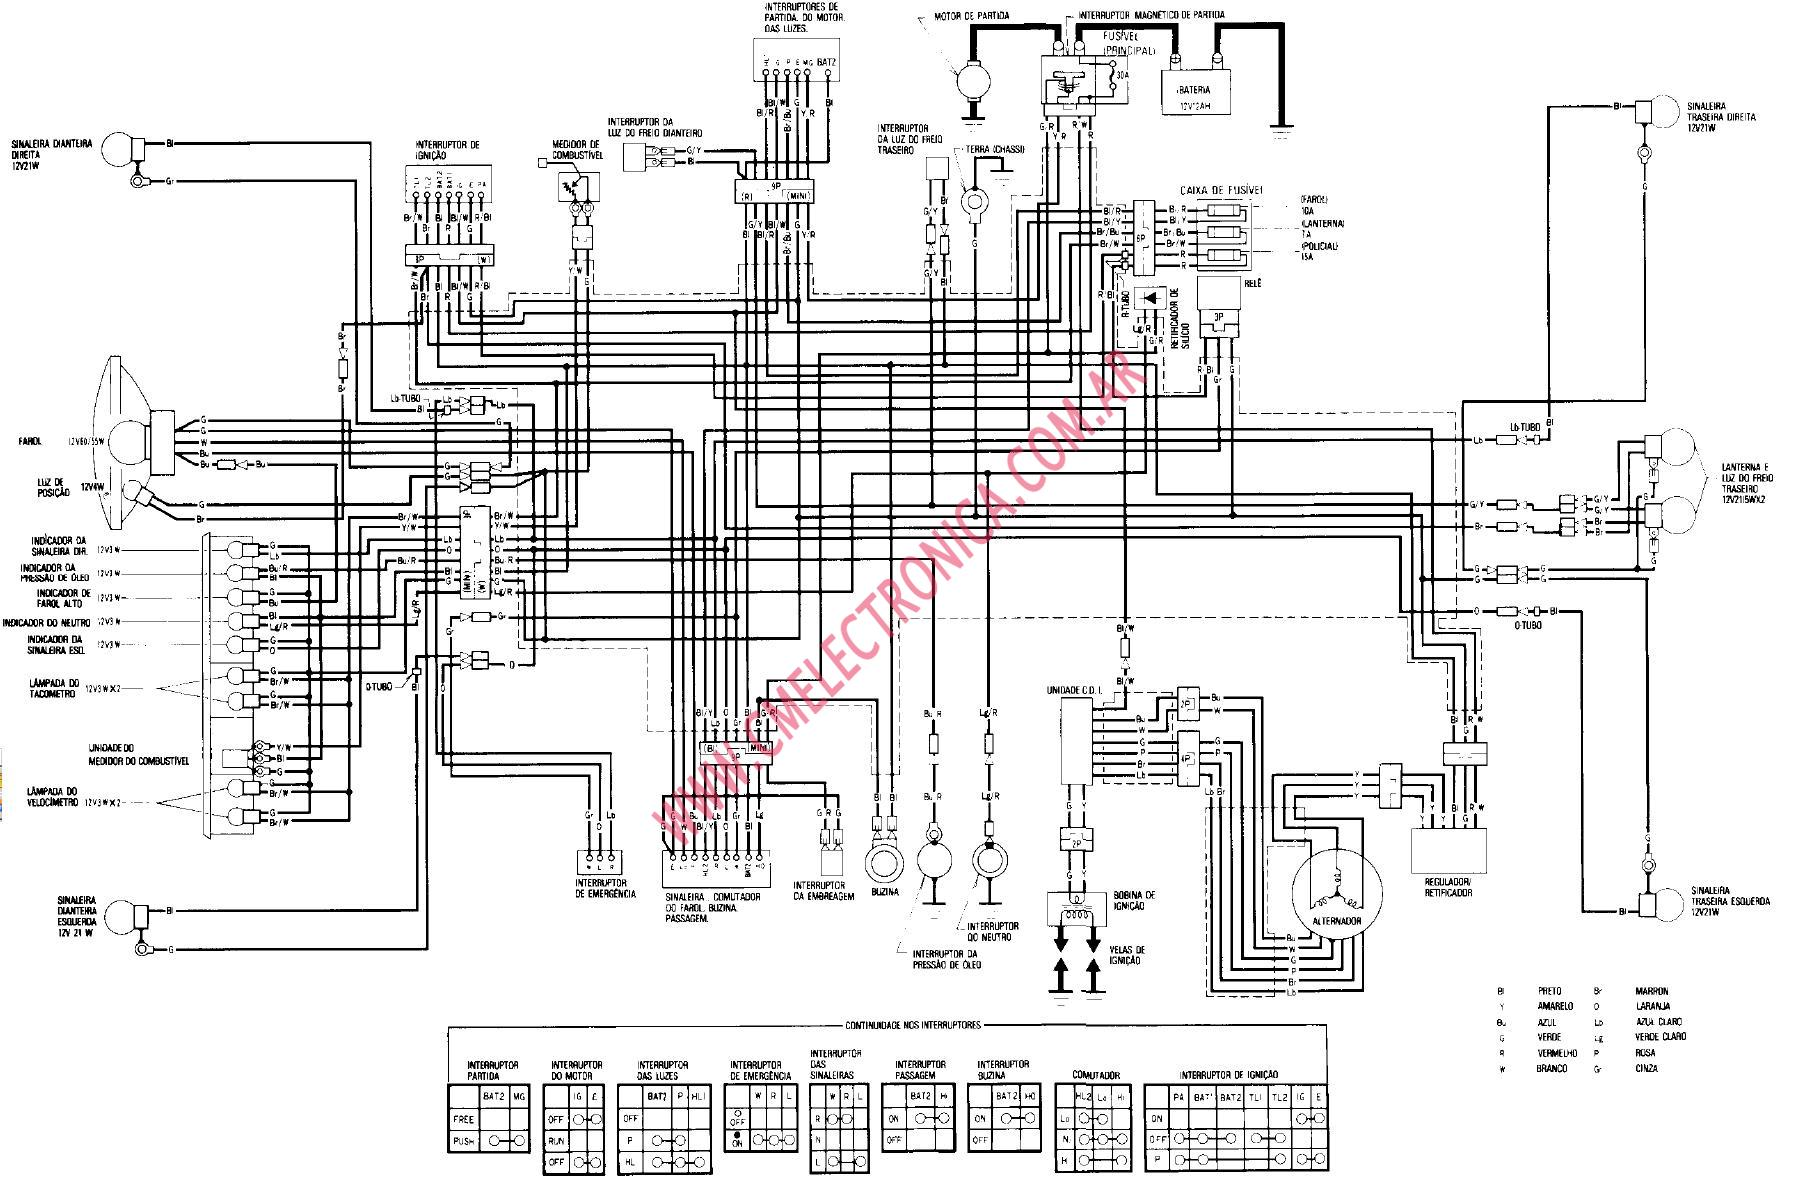 Honda Dream Yuga Wiring Diagram Library For Gsxr 750 Free Engine Image Motorcycle